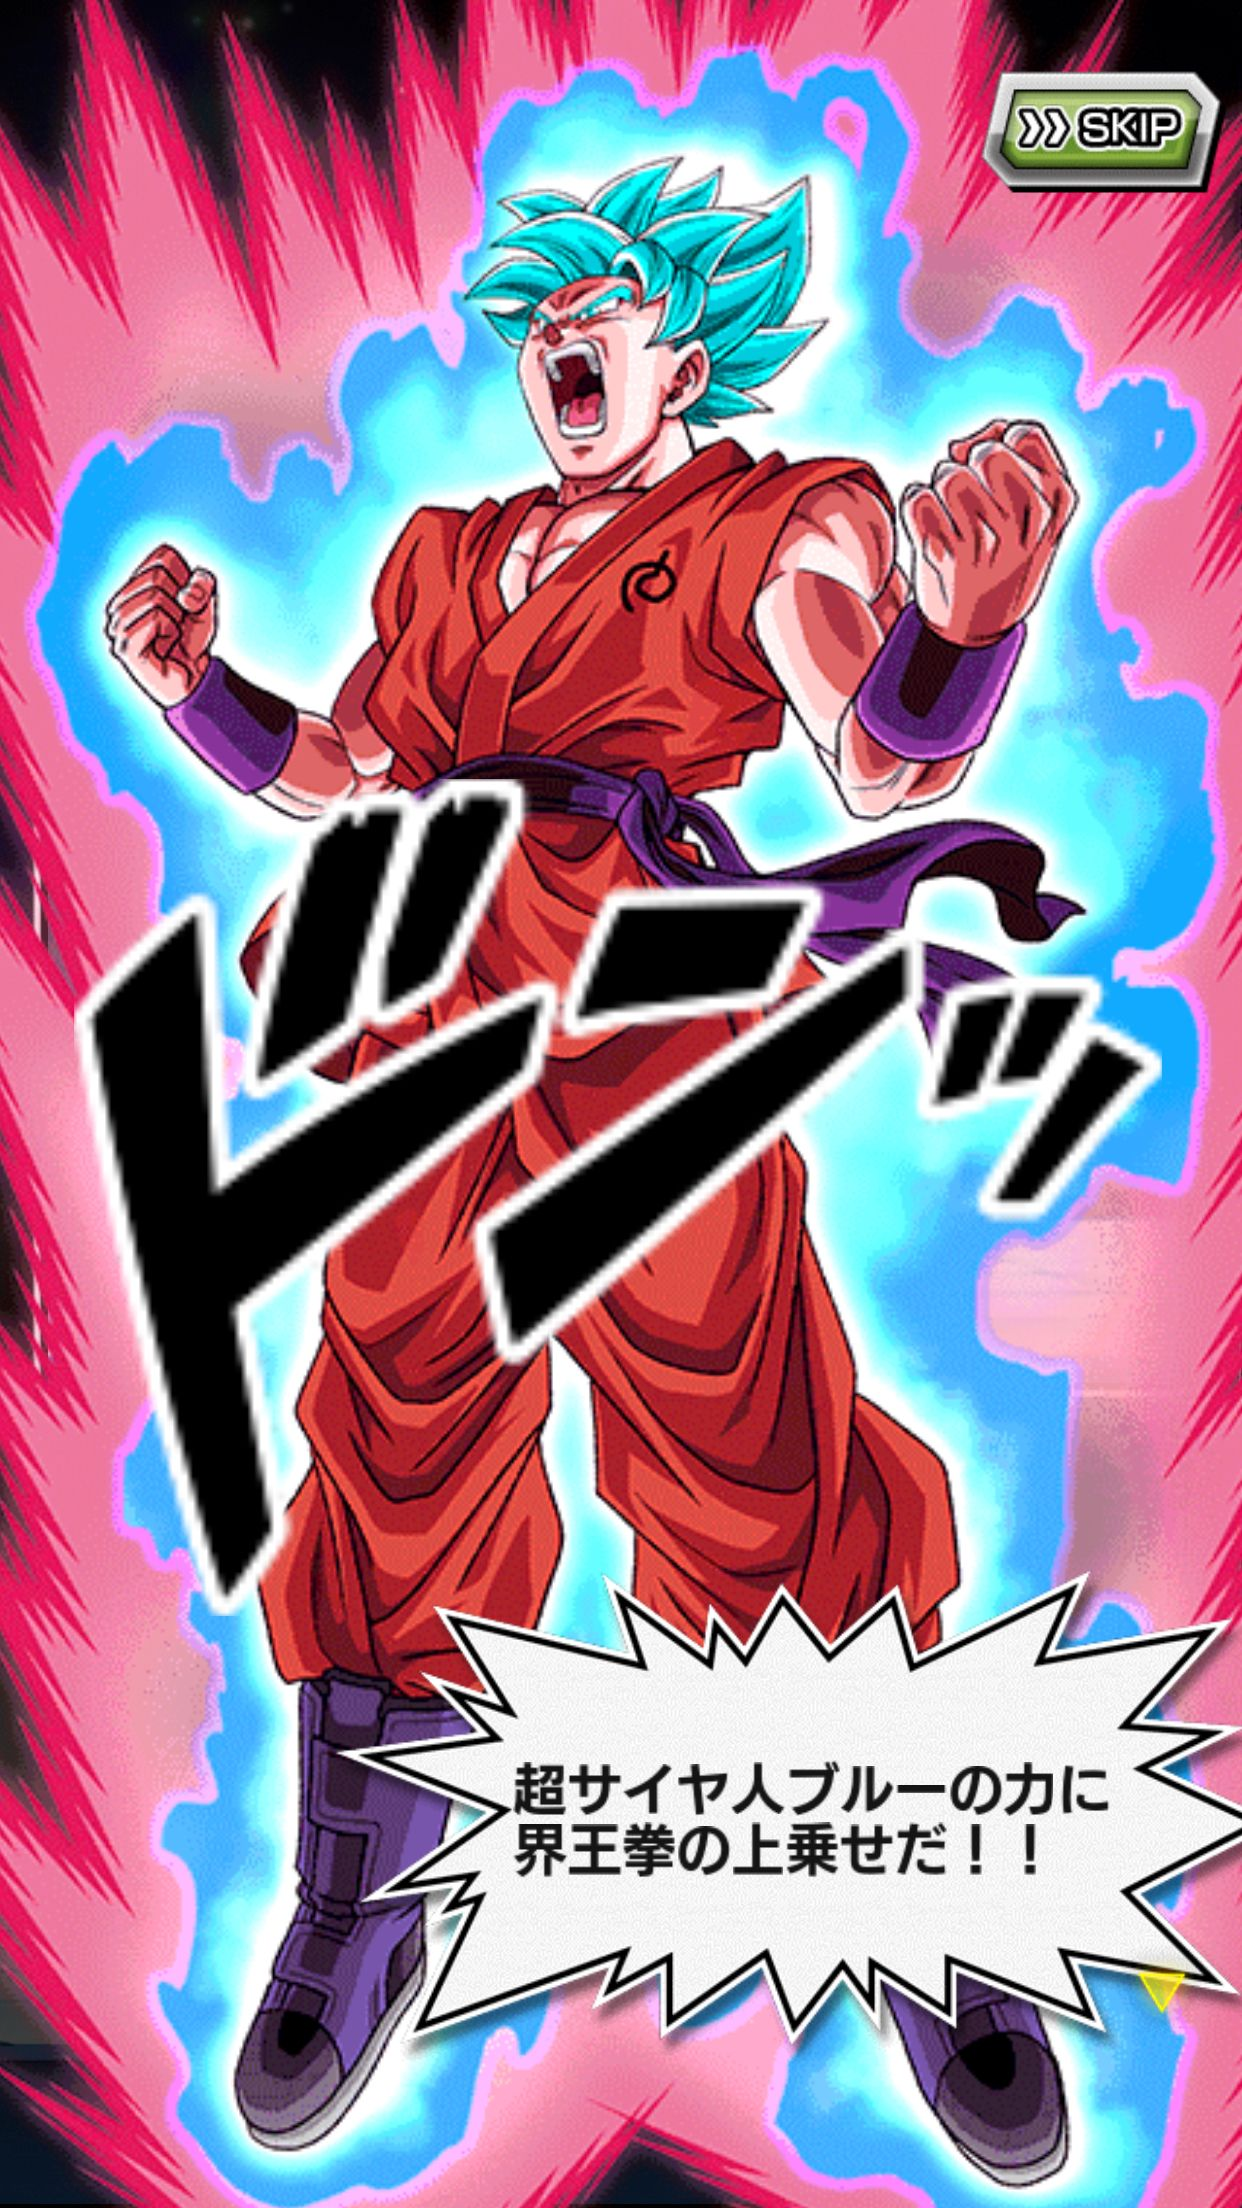 Super Saiyan Blue W Kaioken X10 This Was One If Not The Most Epic Moment In Super Swag Art Dragon Ball Z Super Saiyan Blue